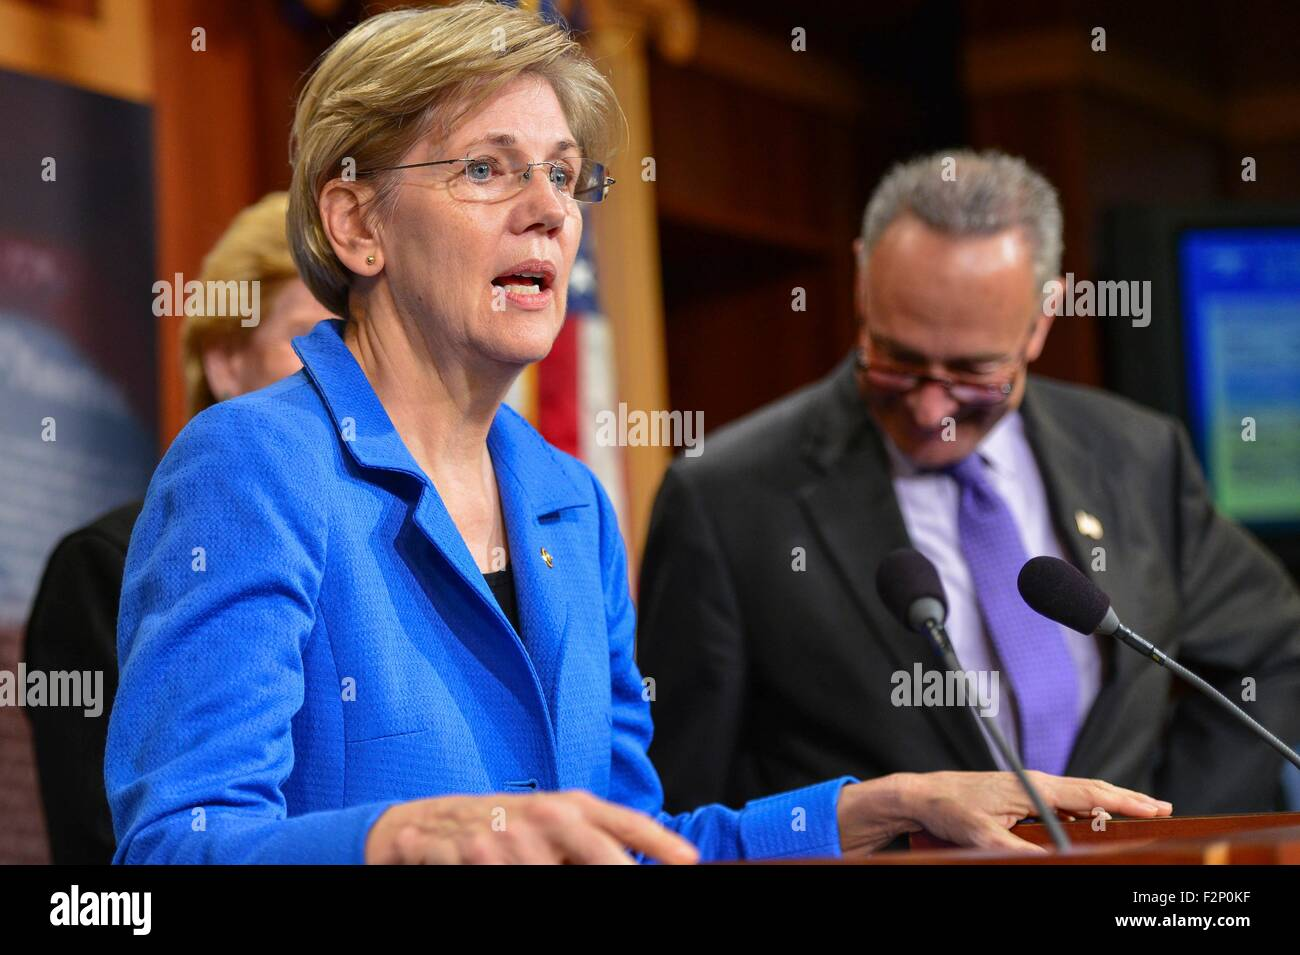 U.S. Senator Elizabeth Warren joins other democrats during a press conference calling for Republicans to support Stock Photo